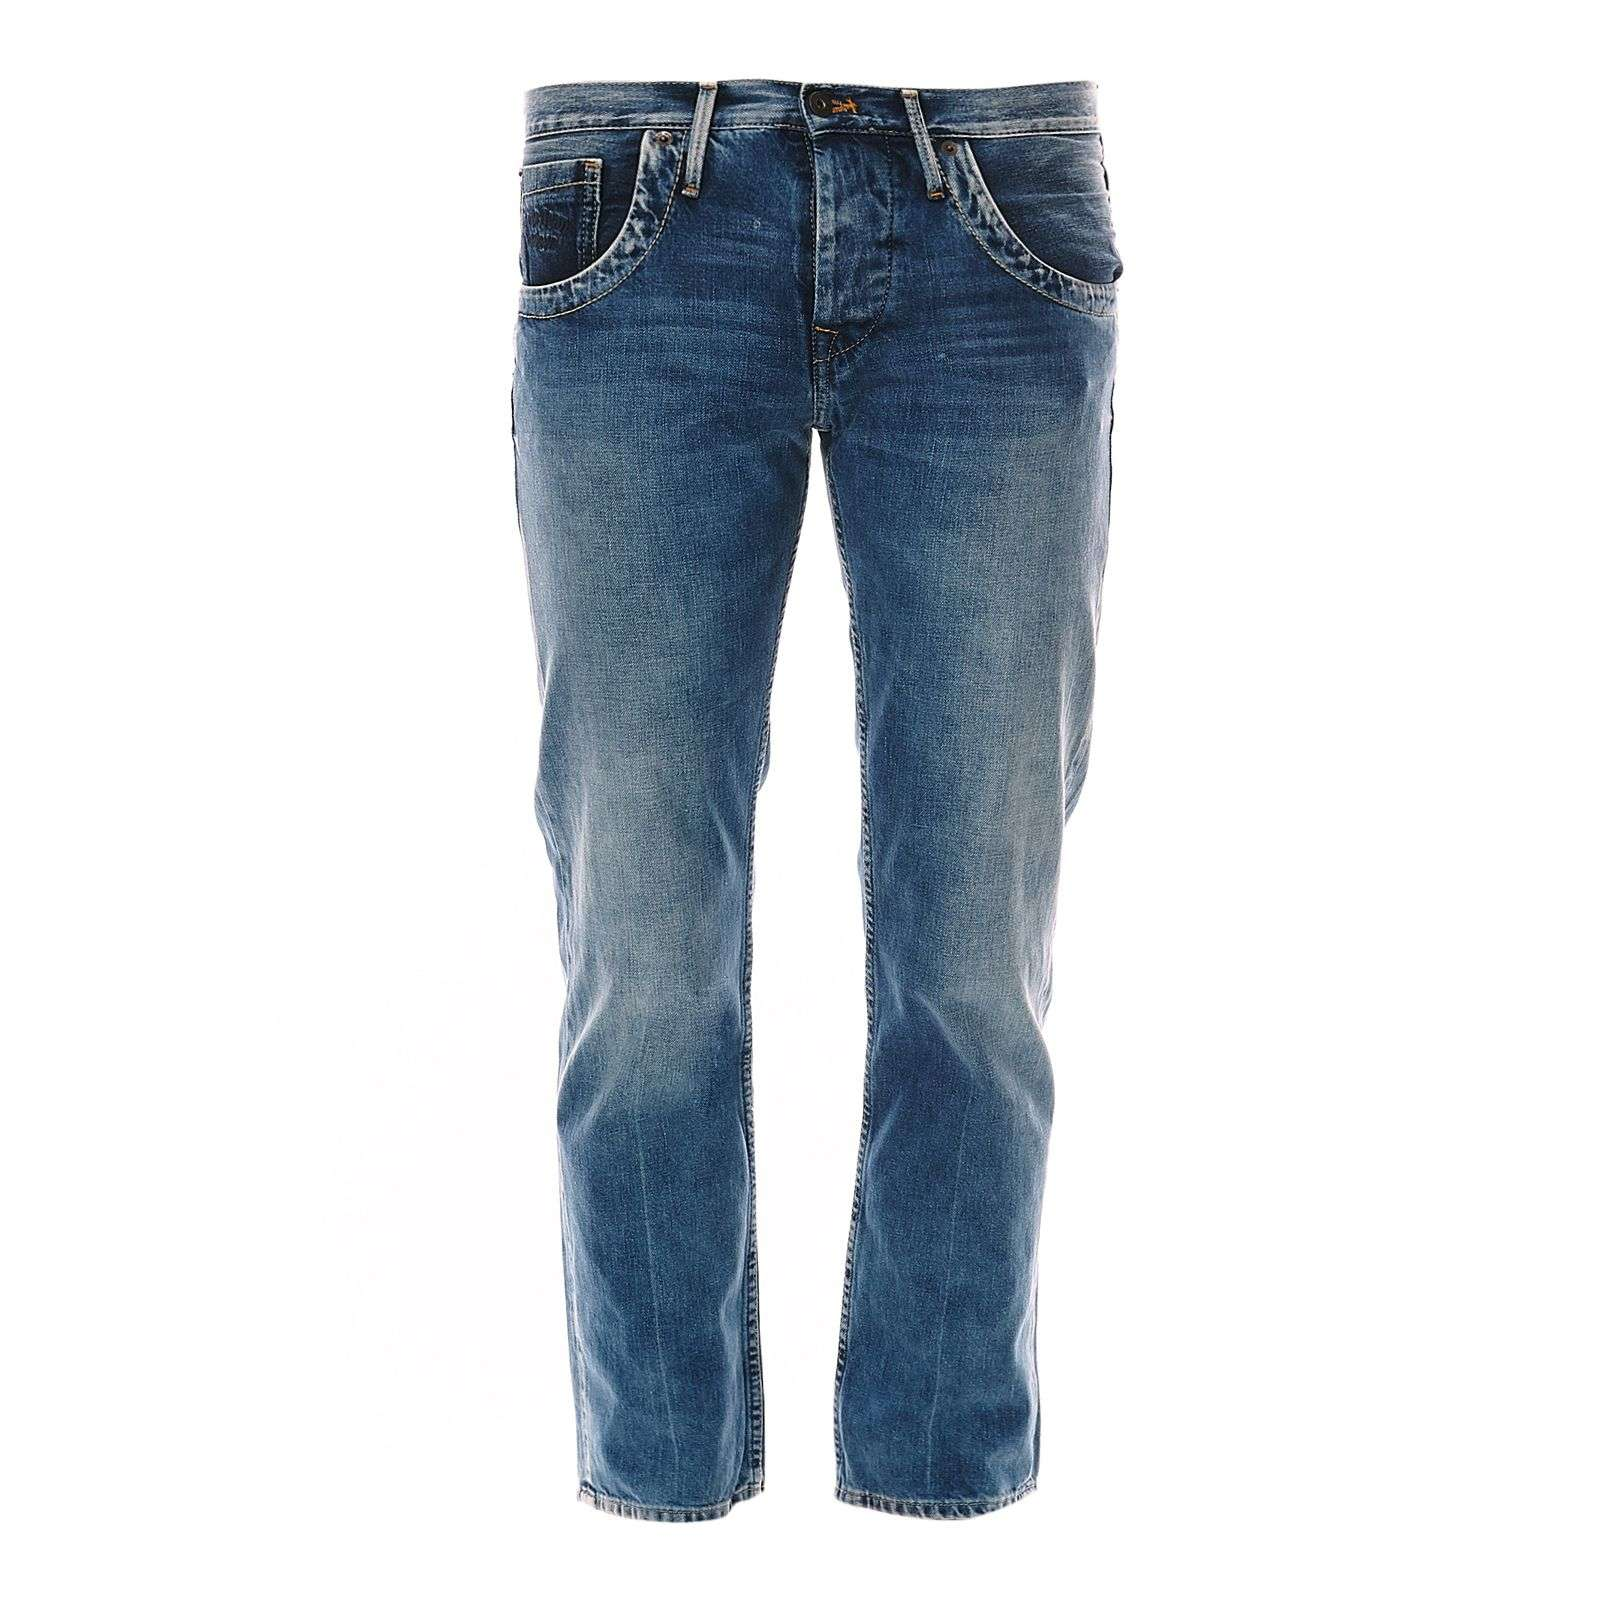 Pepe Jeans London Tooting - Jean droit - denim bleu